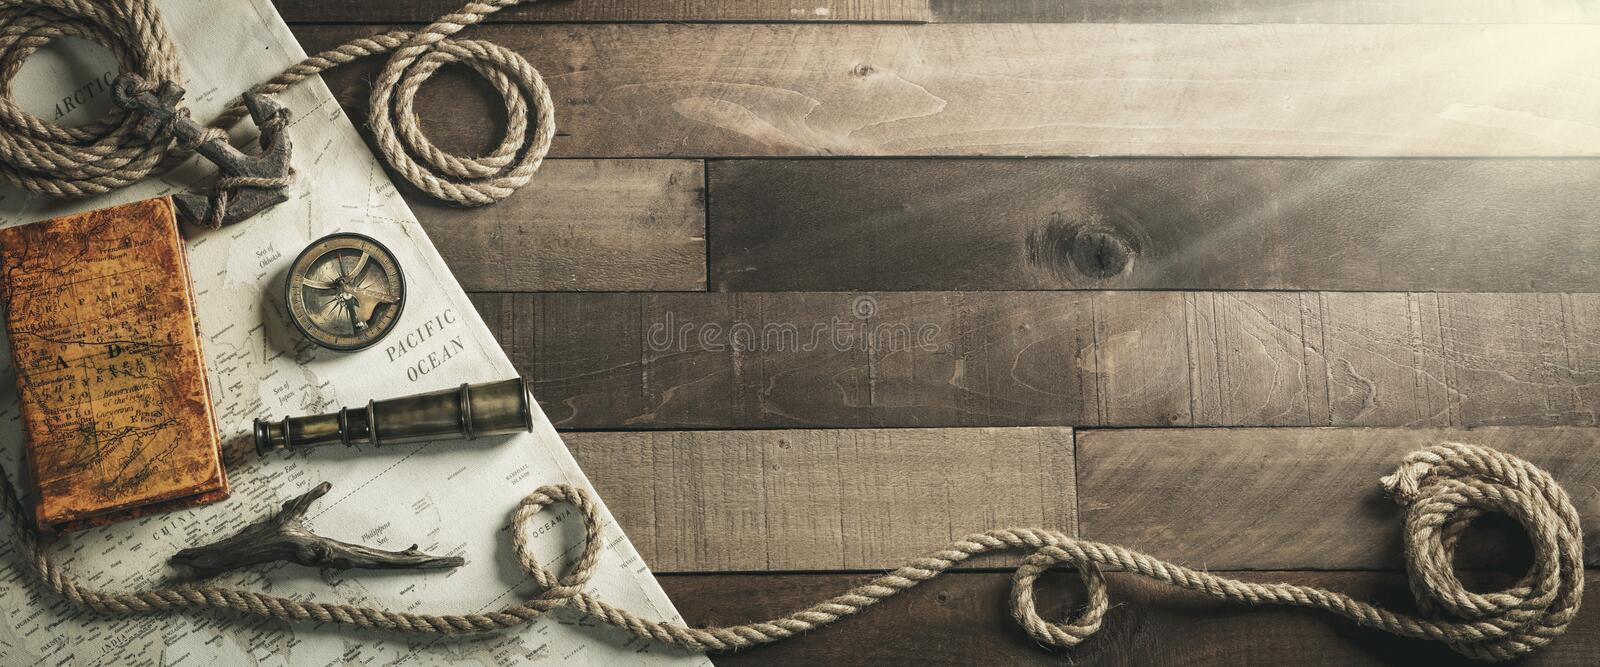 Vintage Nautical Travel Instruments With Rope And Anchor On Wooden Ship Deck Background - Travel / Leadership Concept royalty free stock image